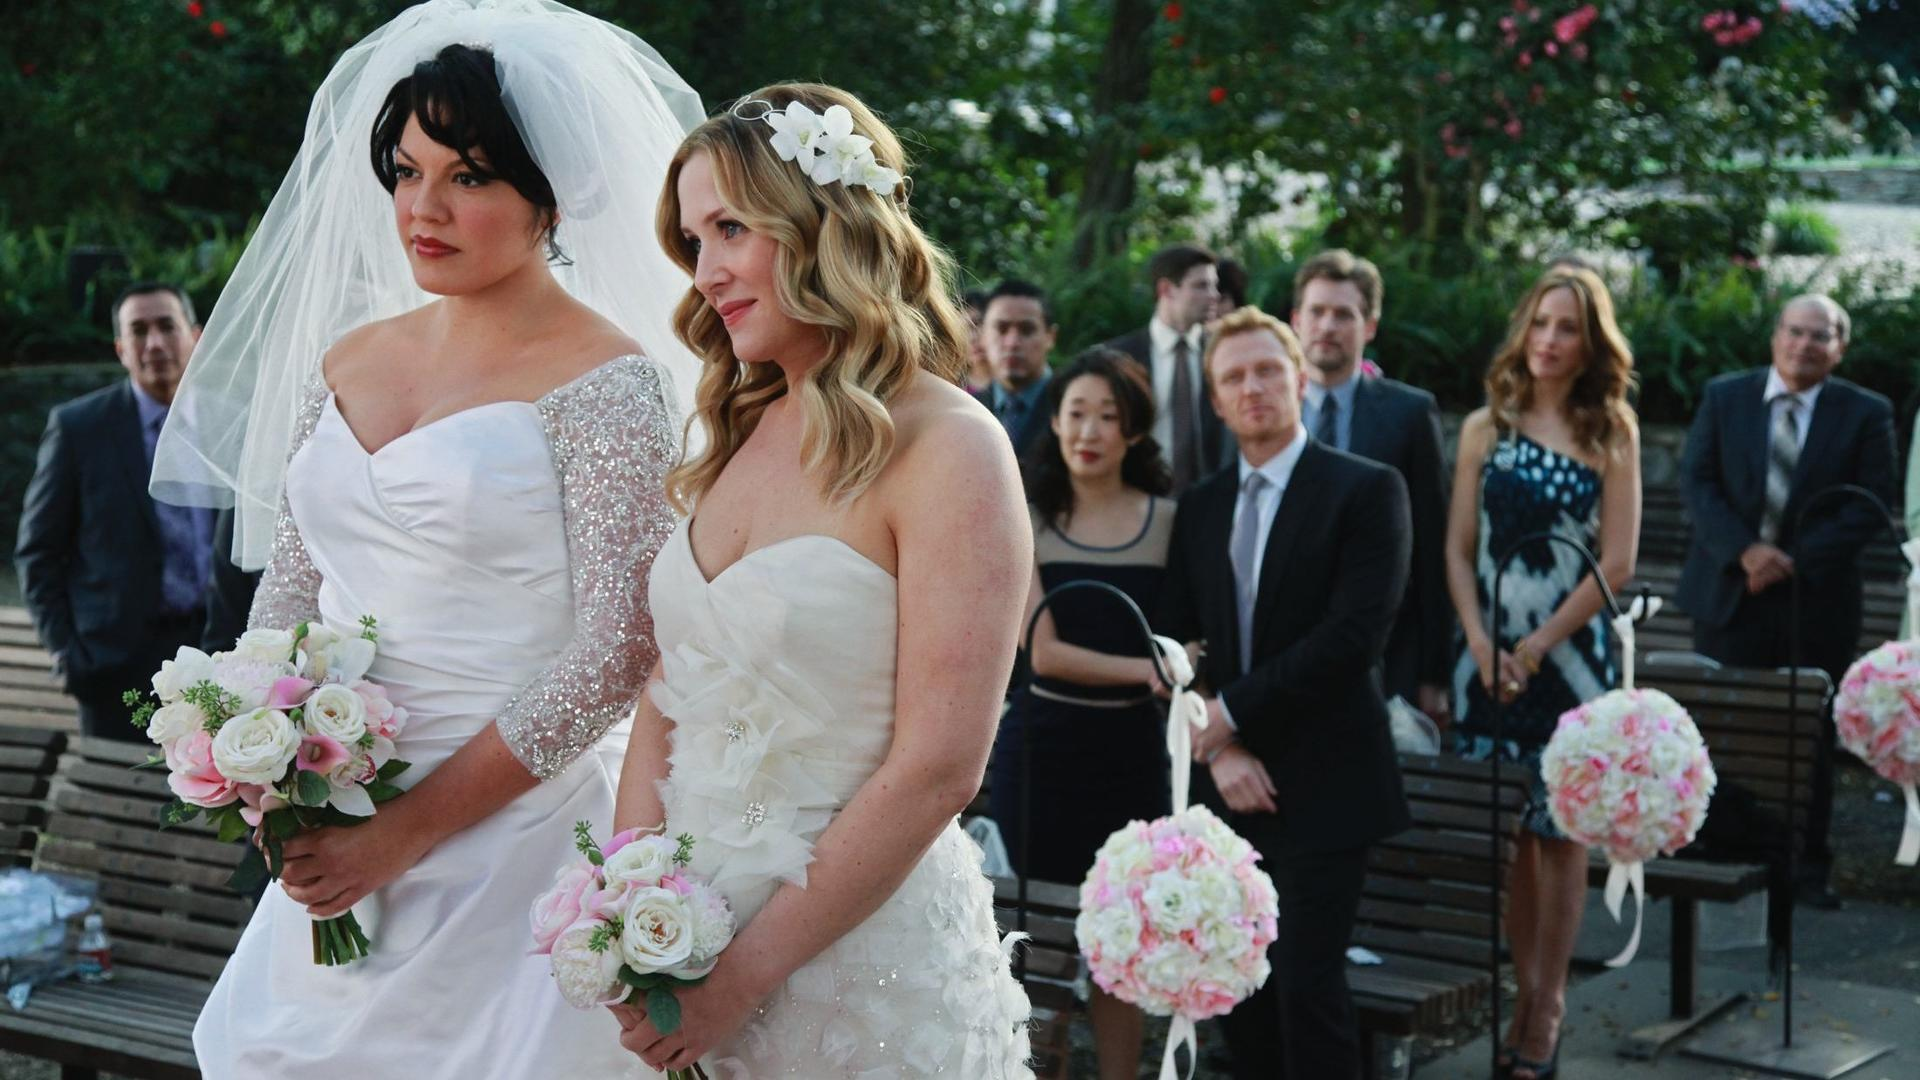 White Wedding Summary - Greys Anatomy Season 7, Episode 20 Episode Guide